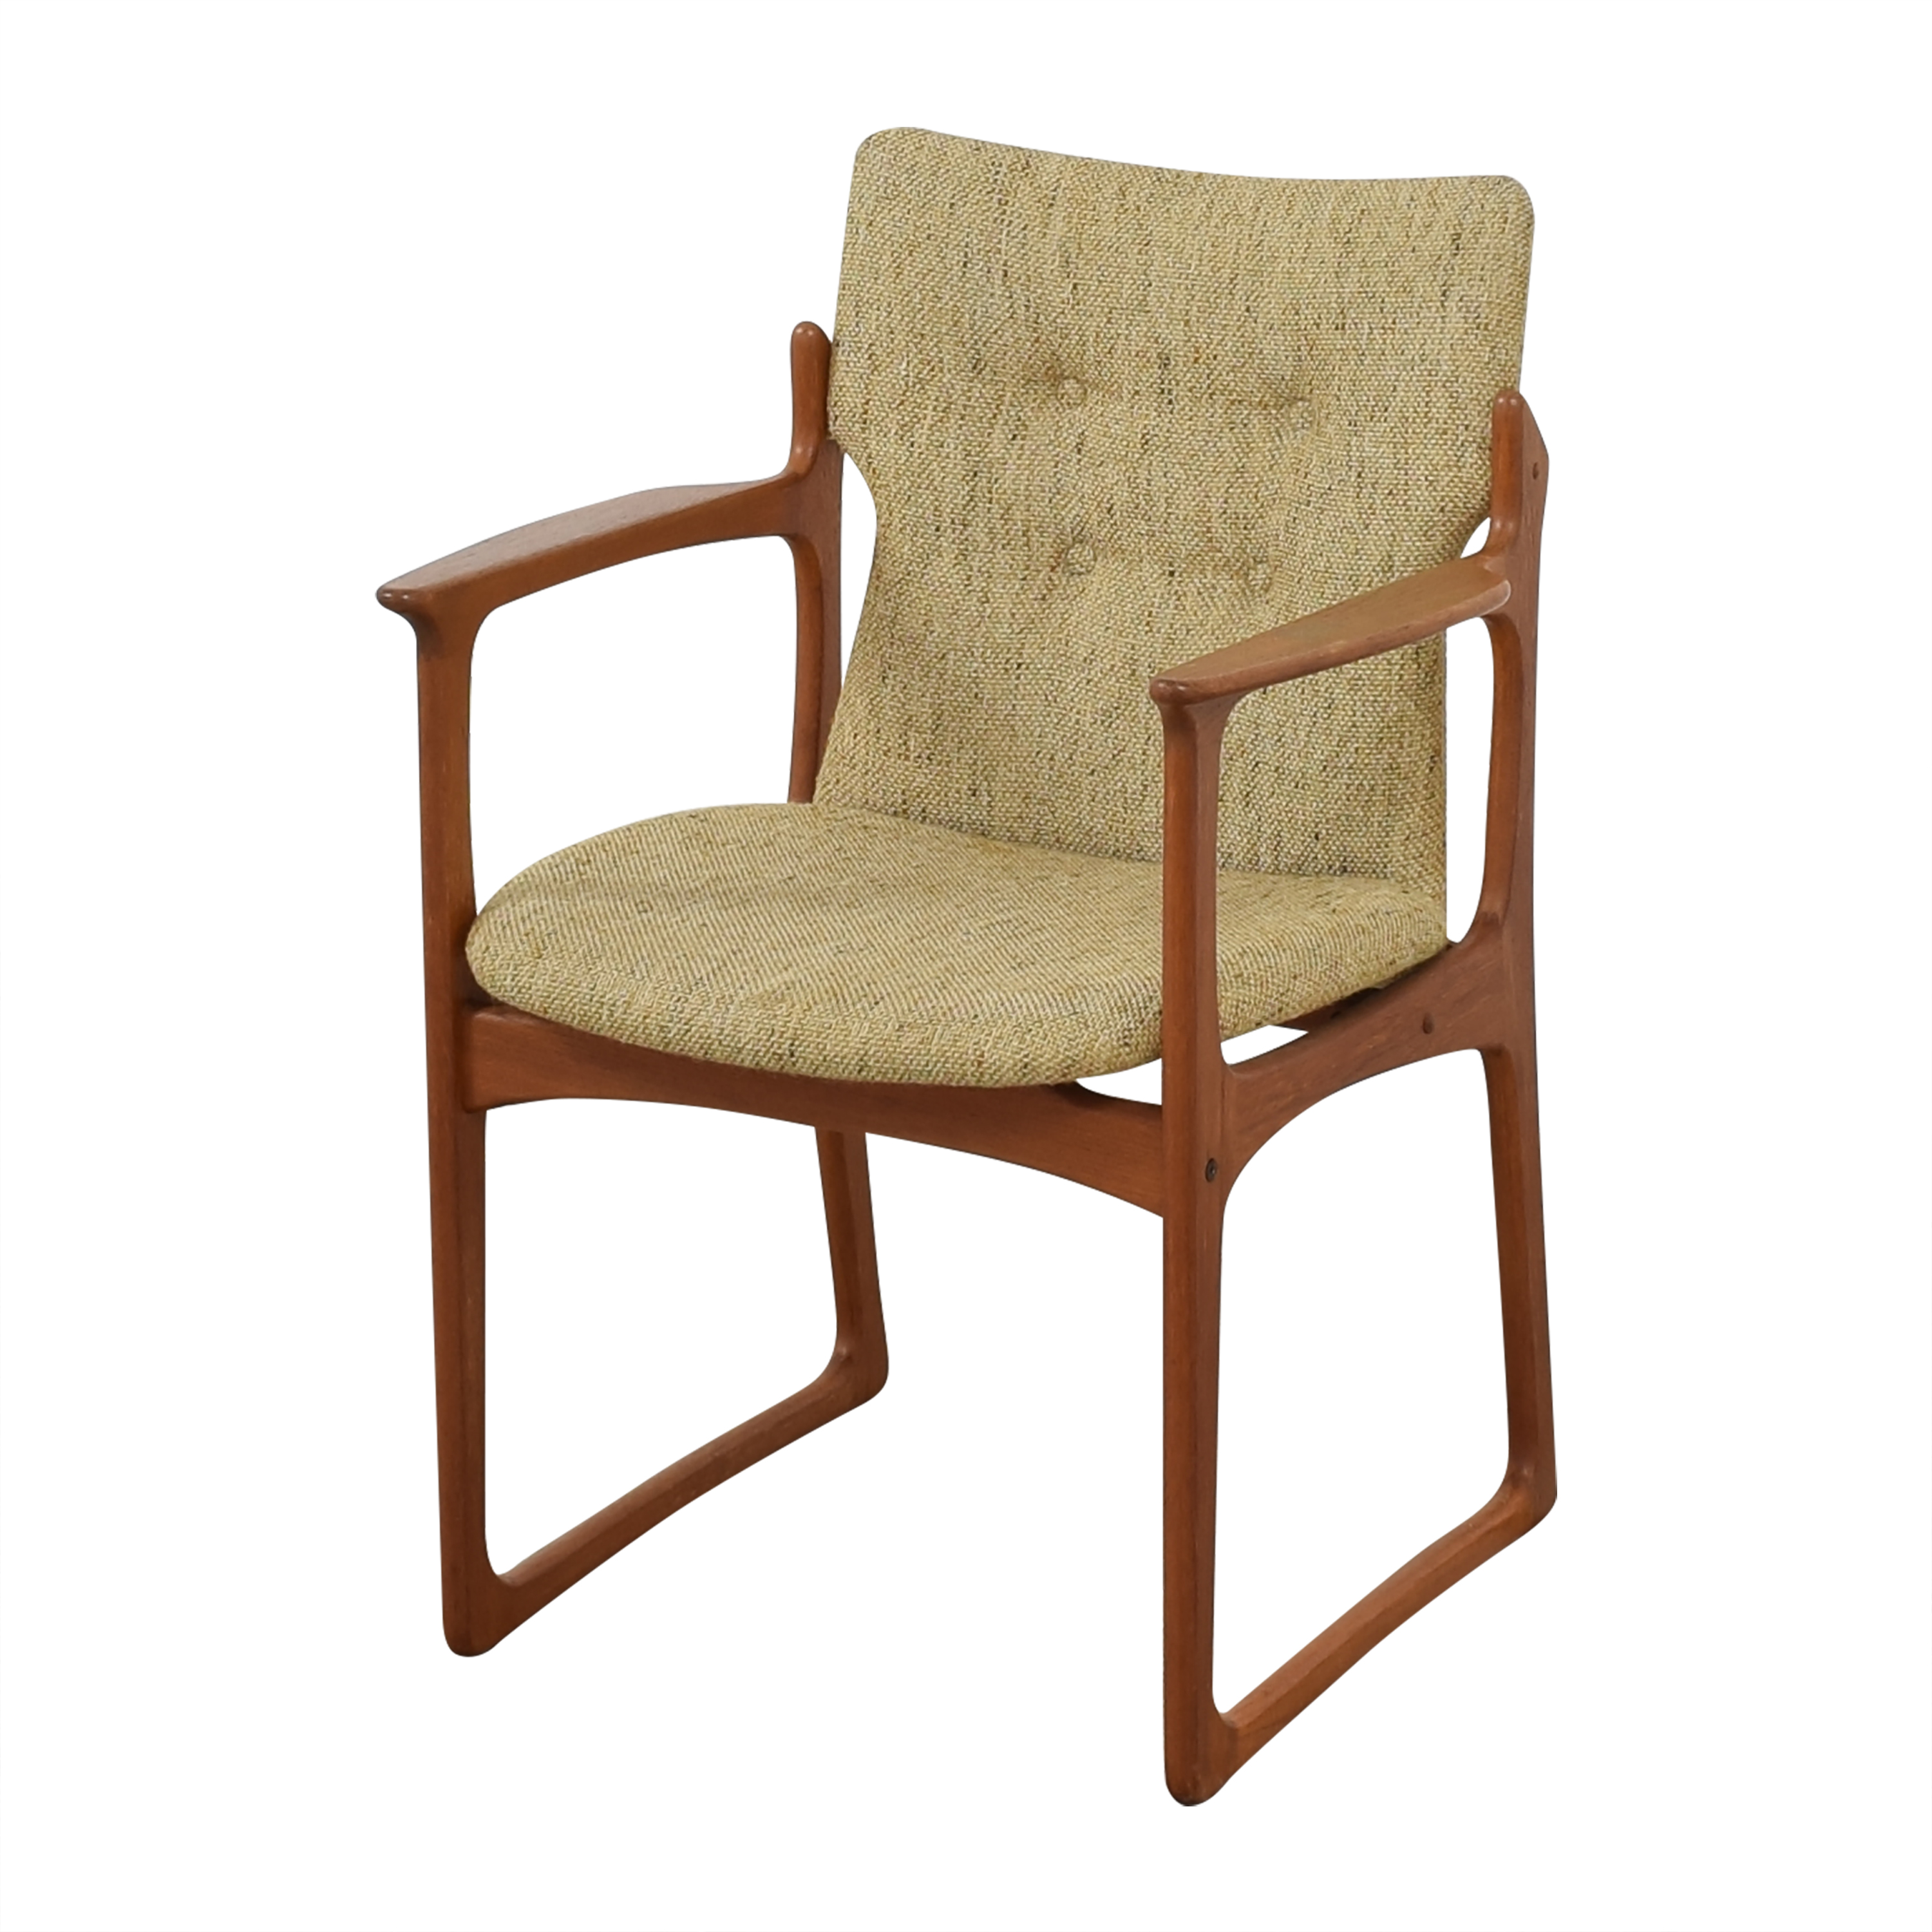 Vintage Danish Upholstered Dining Chairs  sale